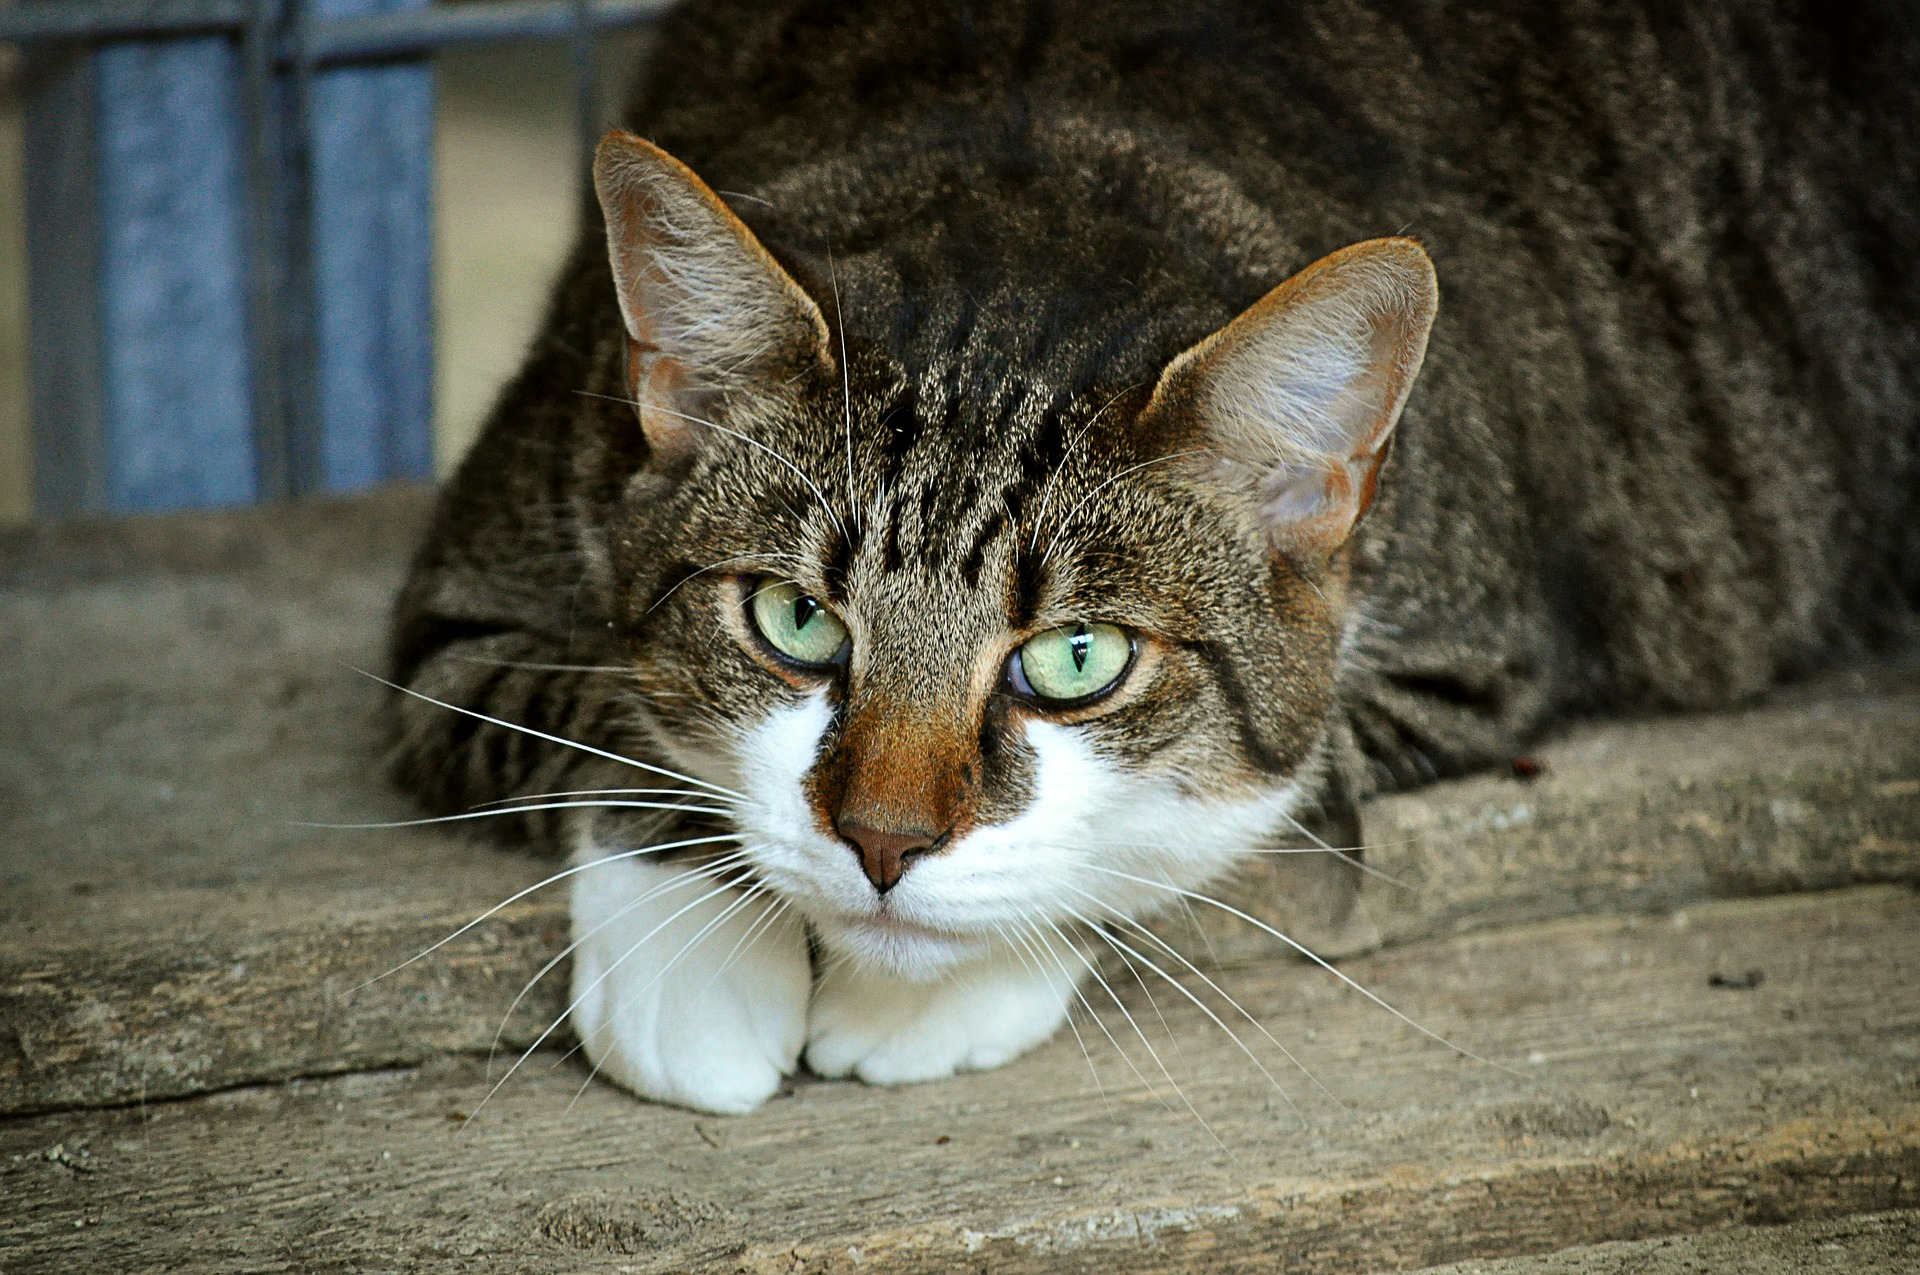 Blood in Cat's Anus: Can Cancer Be Cause?